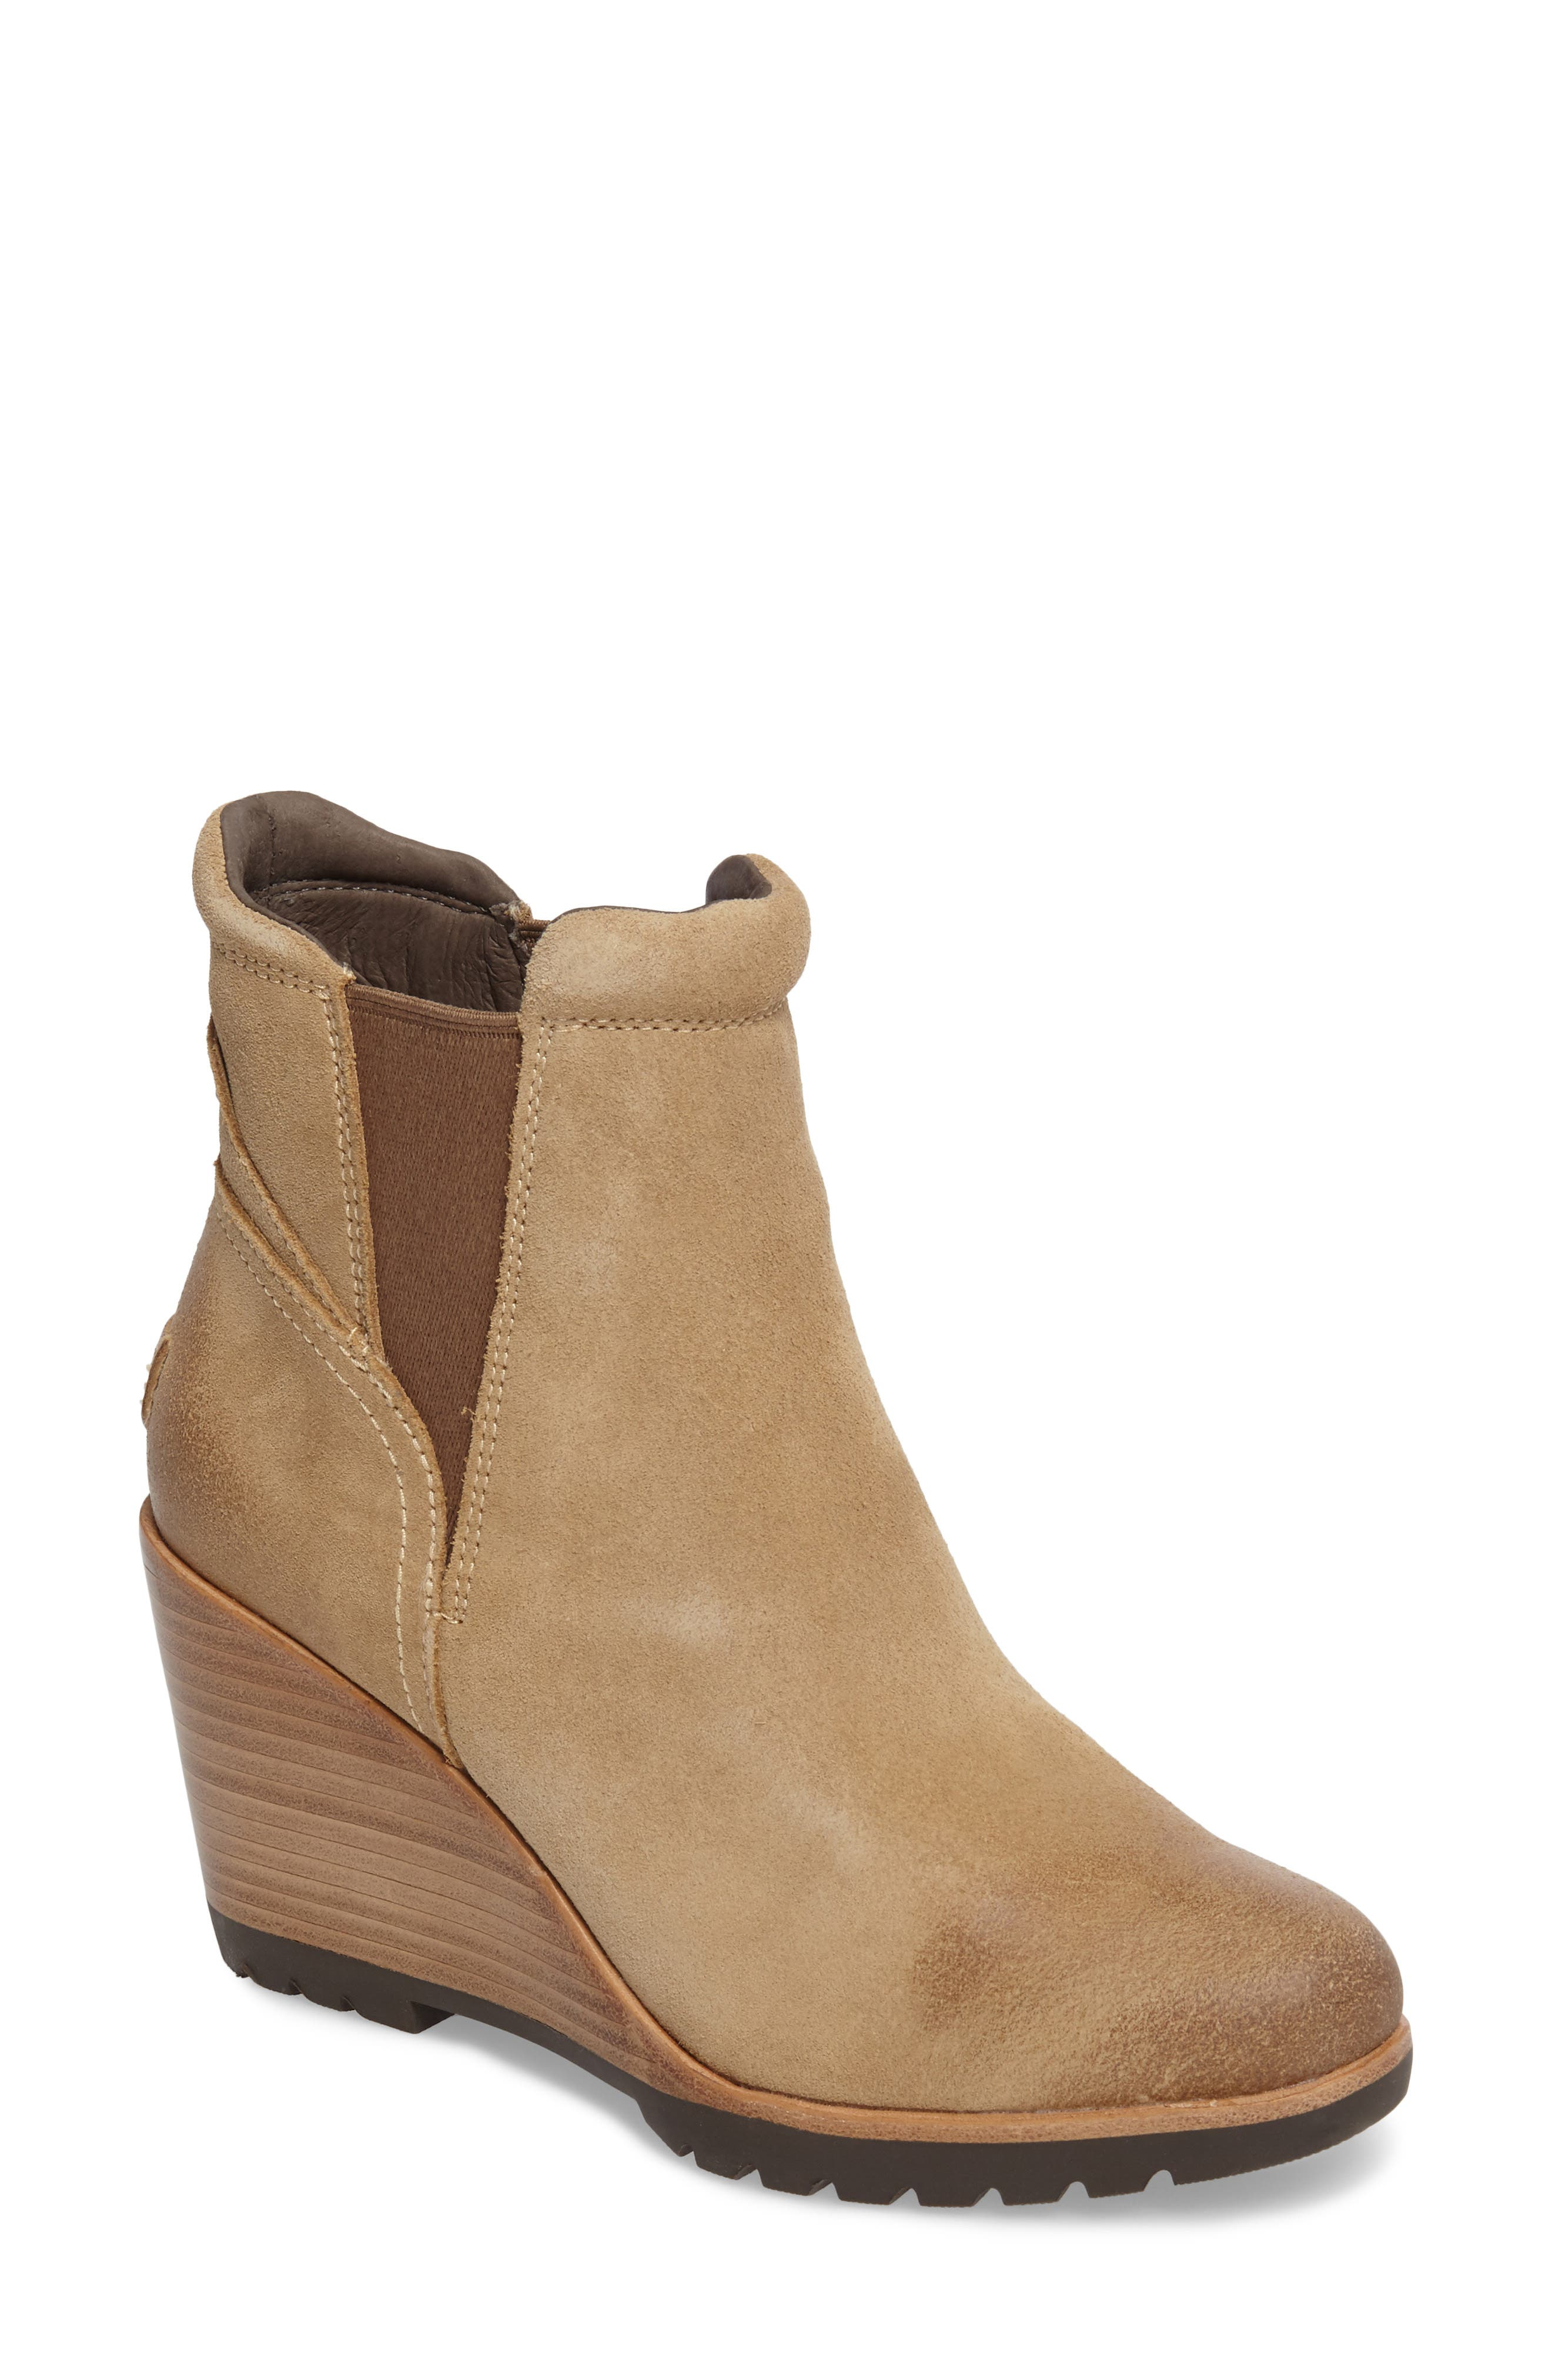 After Hours Chelsea Boot,                         Main,                         color, Beach